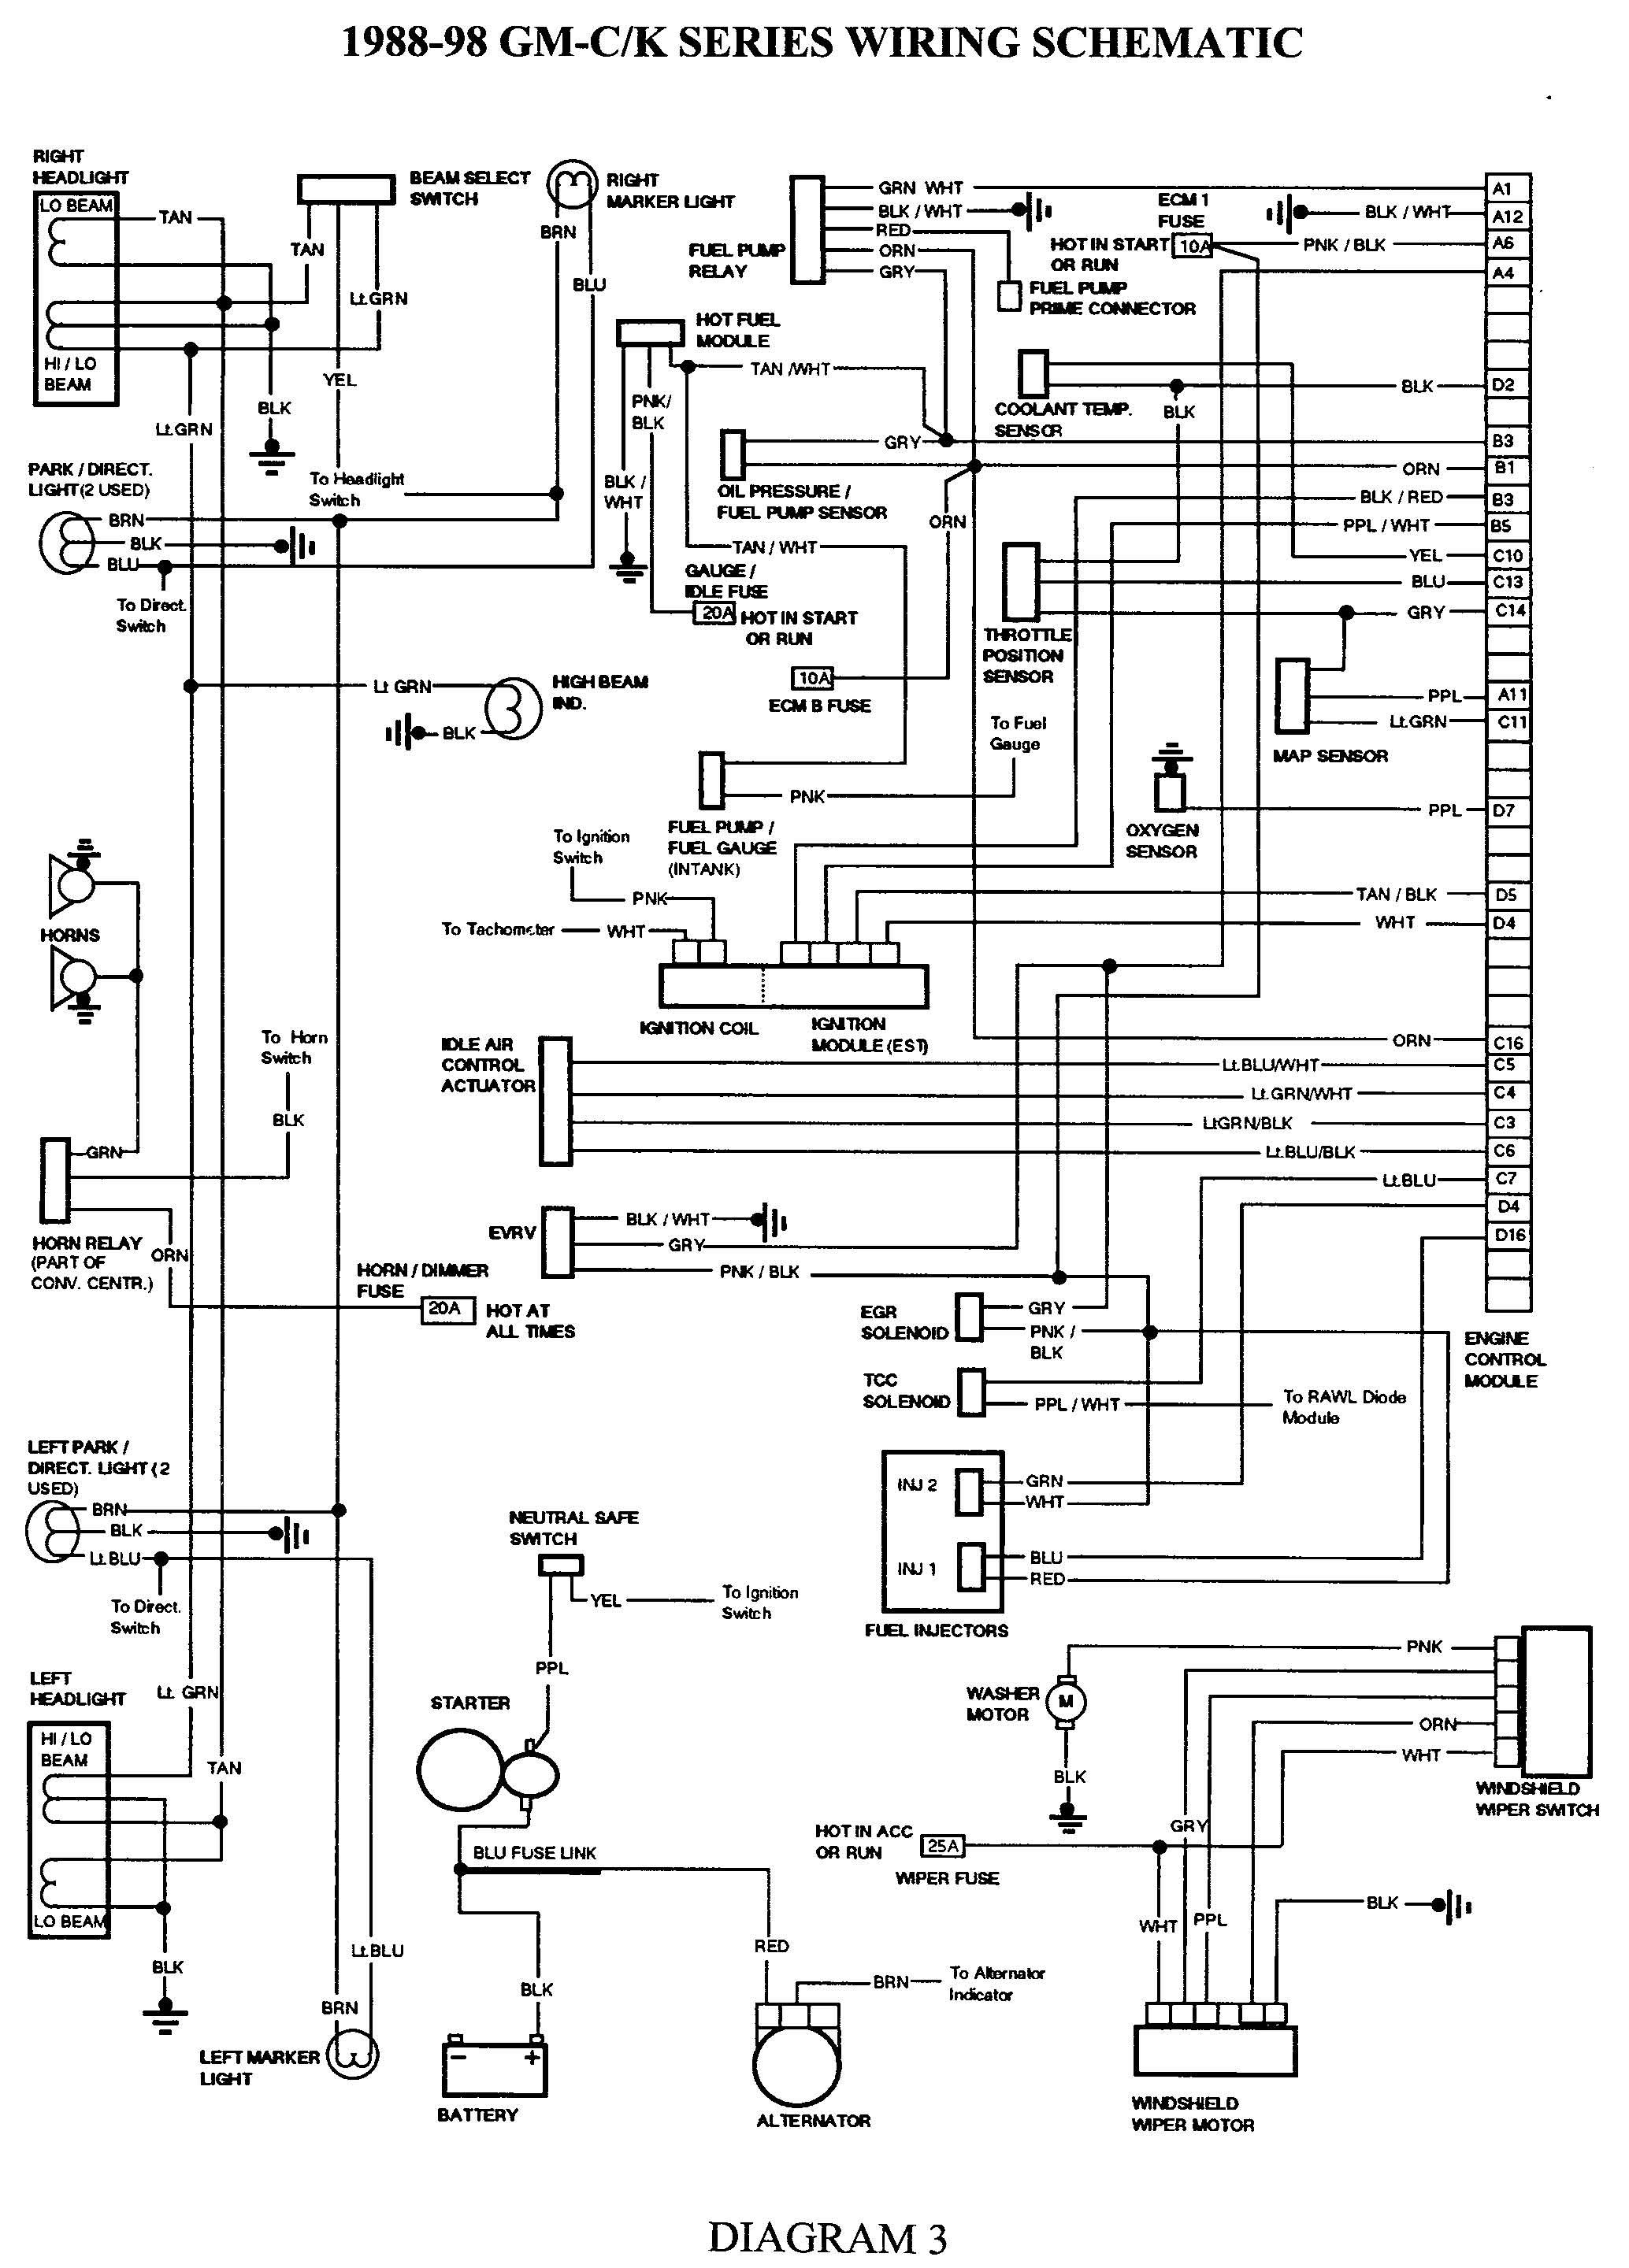 gmc truck wiring diagrams on gm wiring harness diagram 88 98 kc chevy wiring harness gm truck wiring harness [ 2068 x 2880 Pixel ]